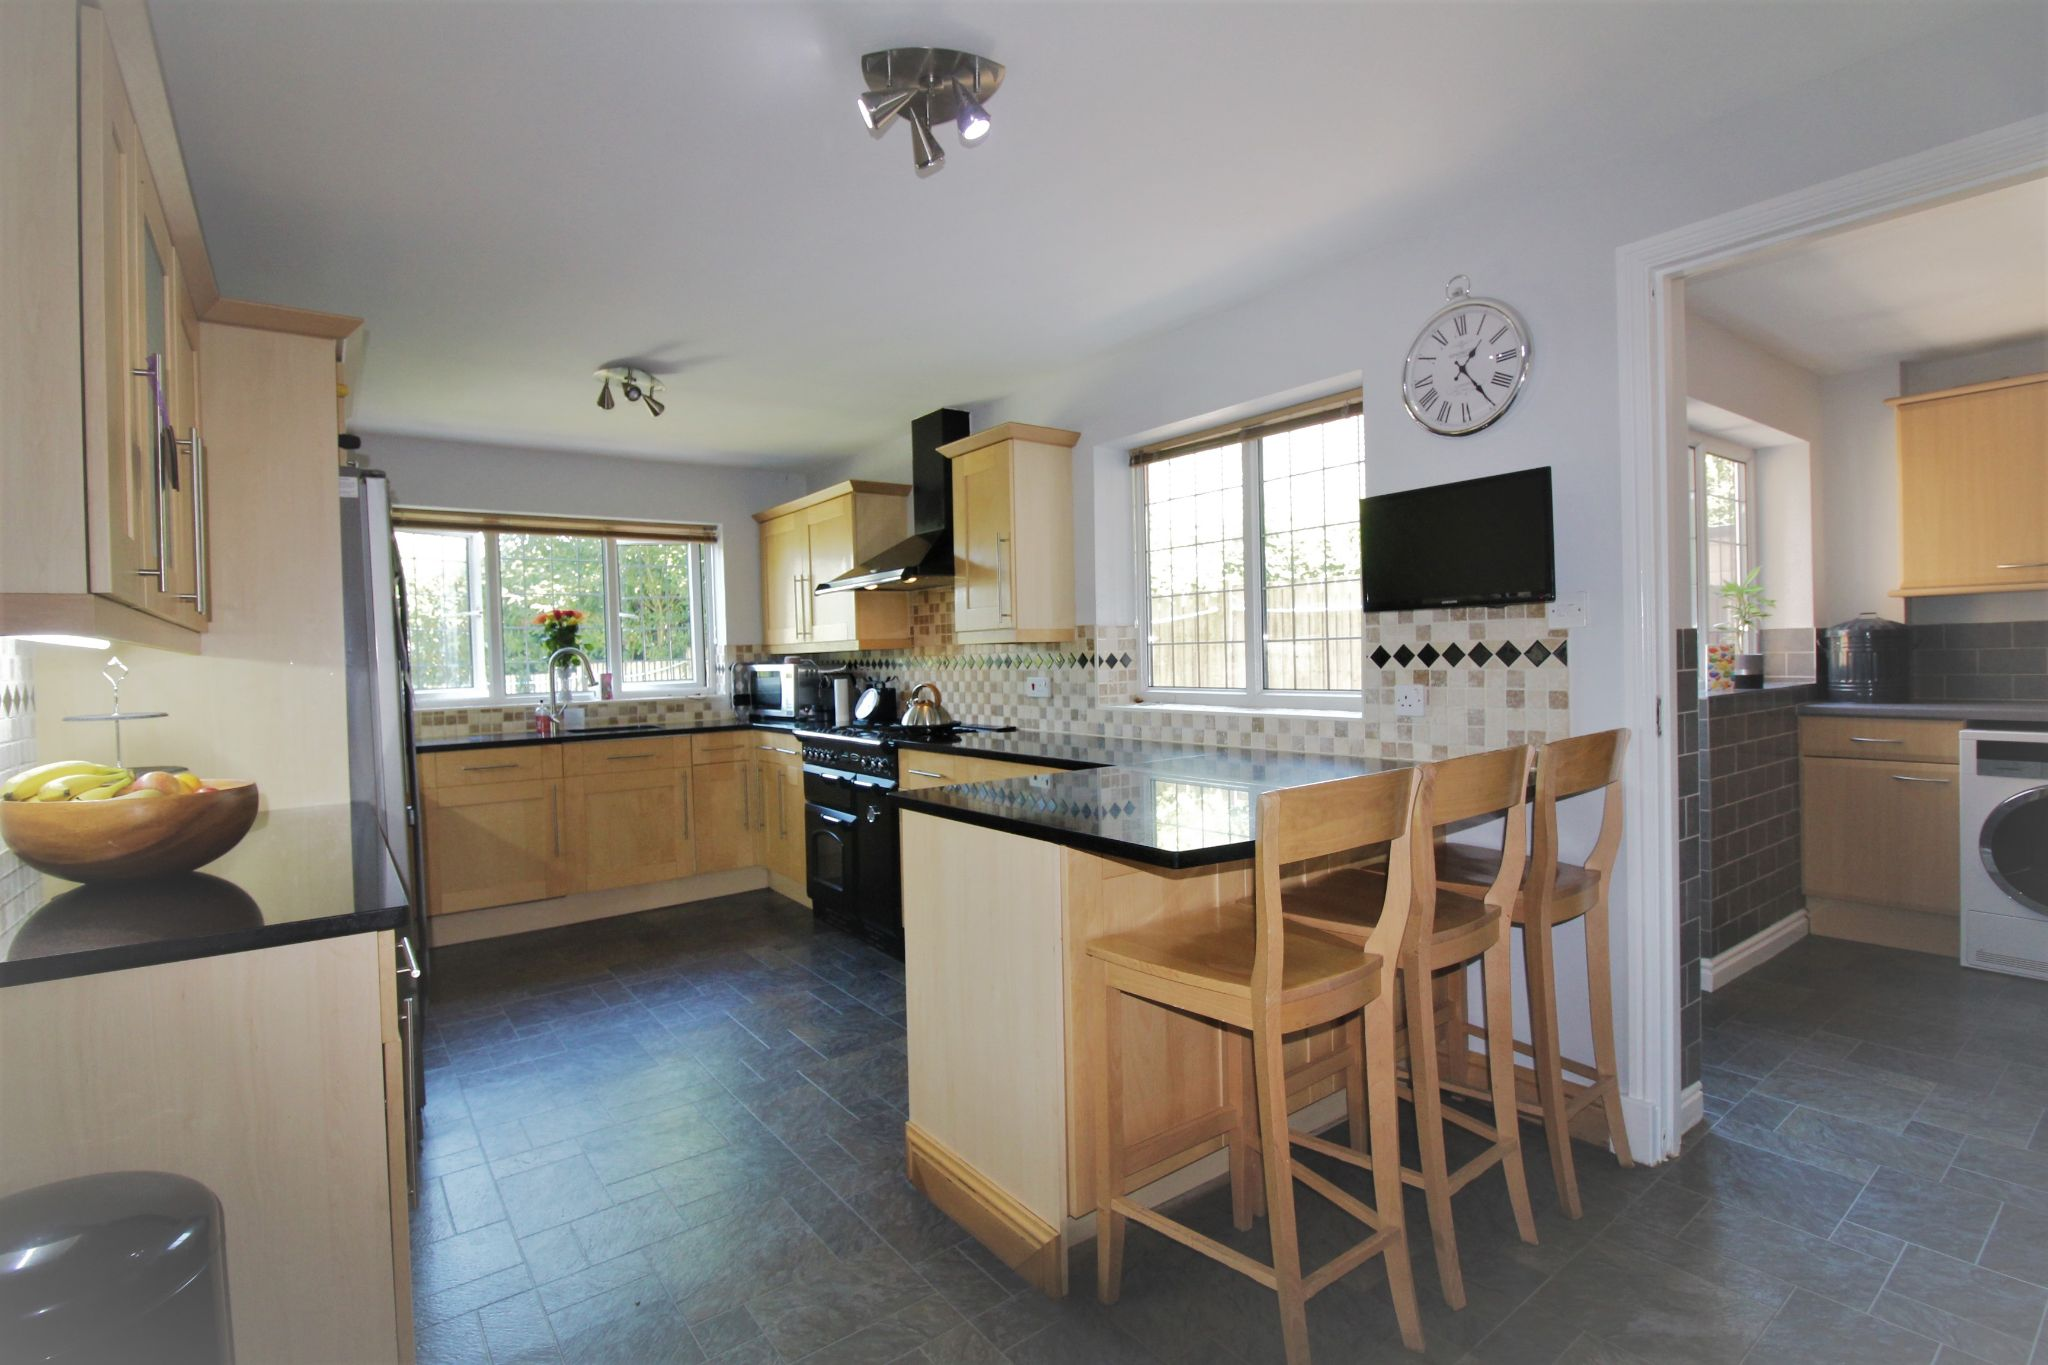 6 bedroom detached house For Sale in Solihull - Photograph 3.